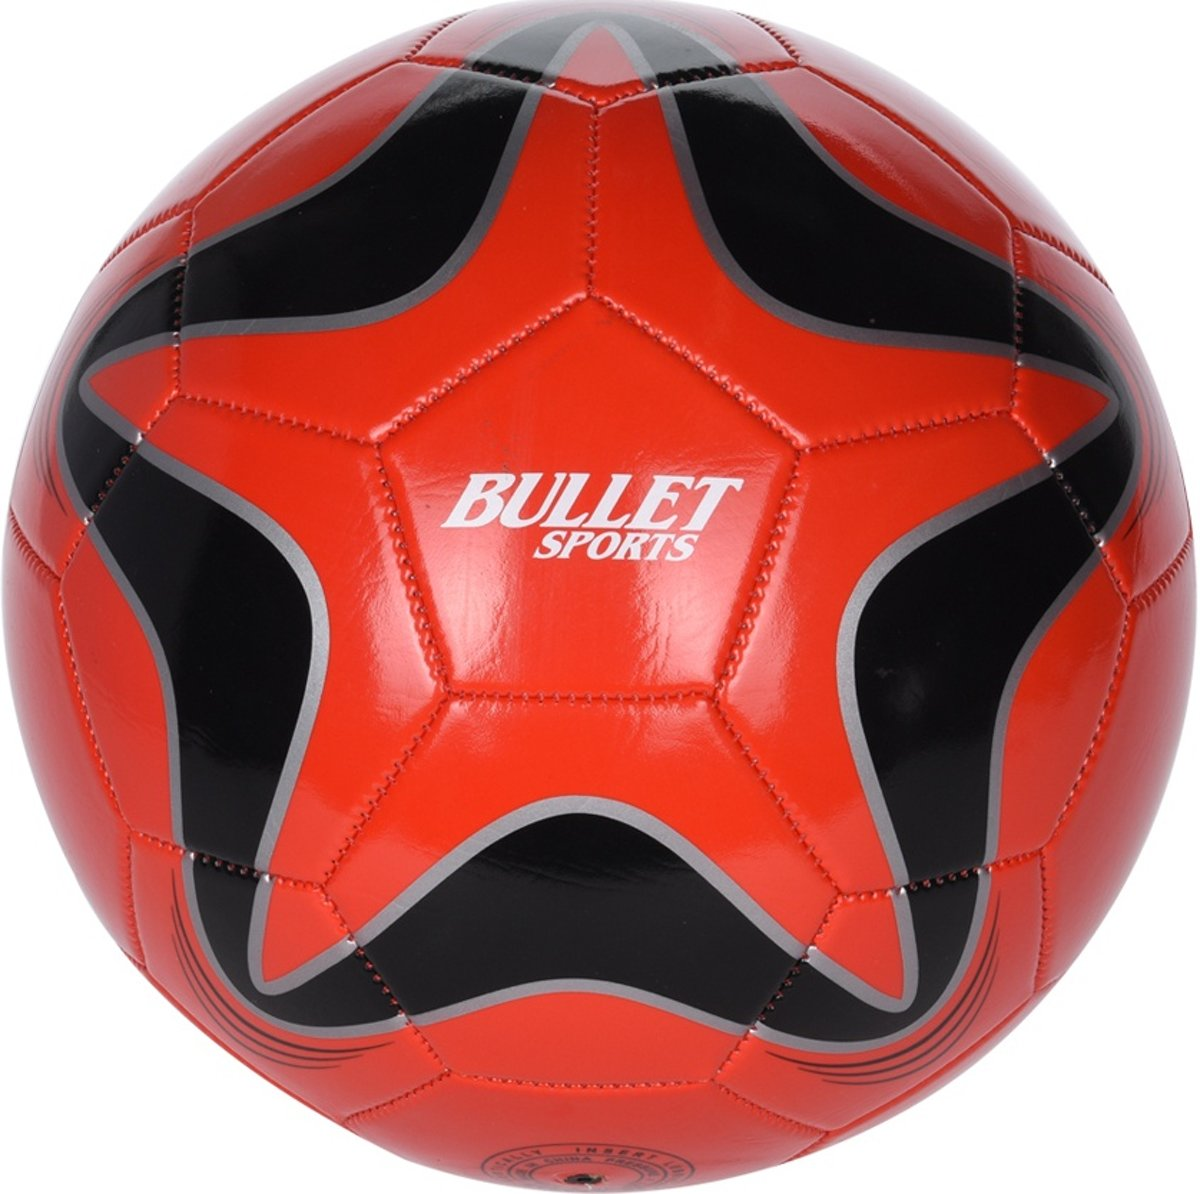 Free And Easy Bullet Sports Voetbal Maat 5 Rood